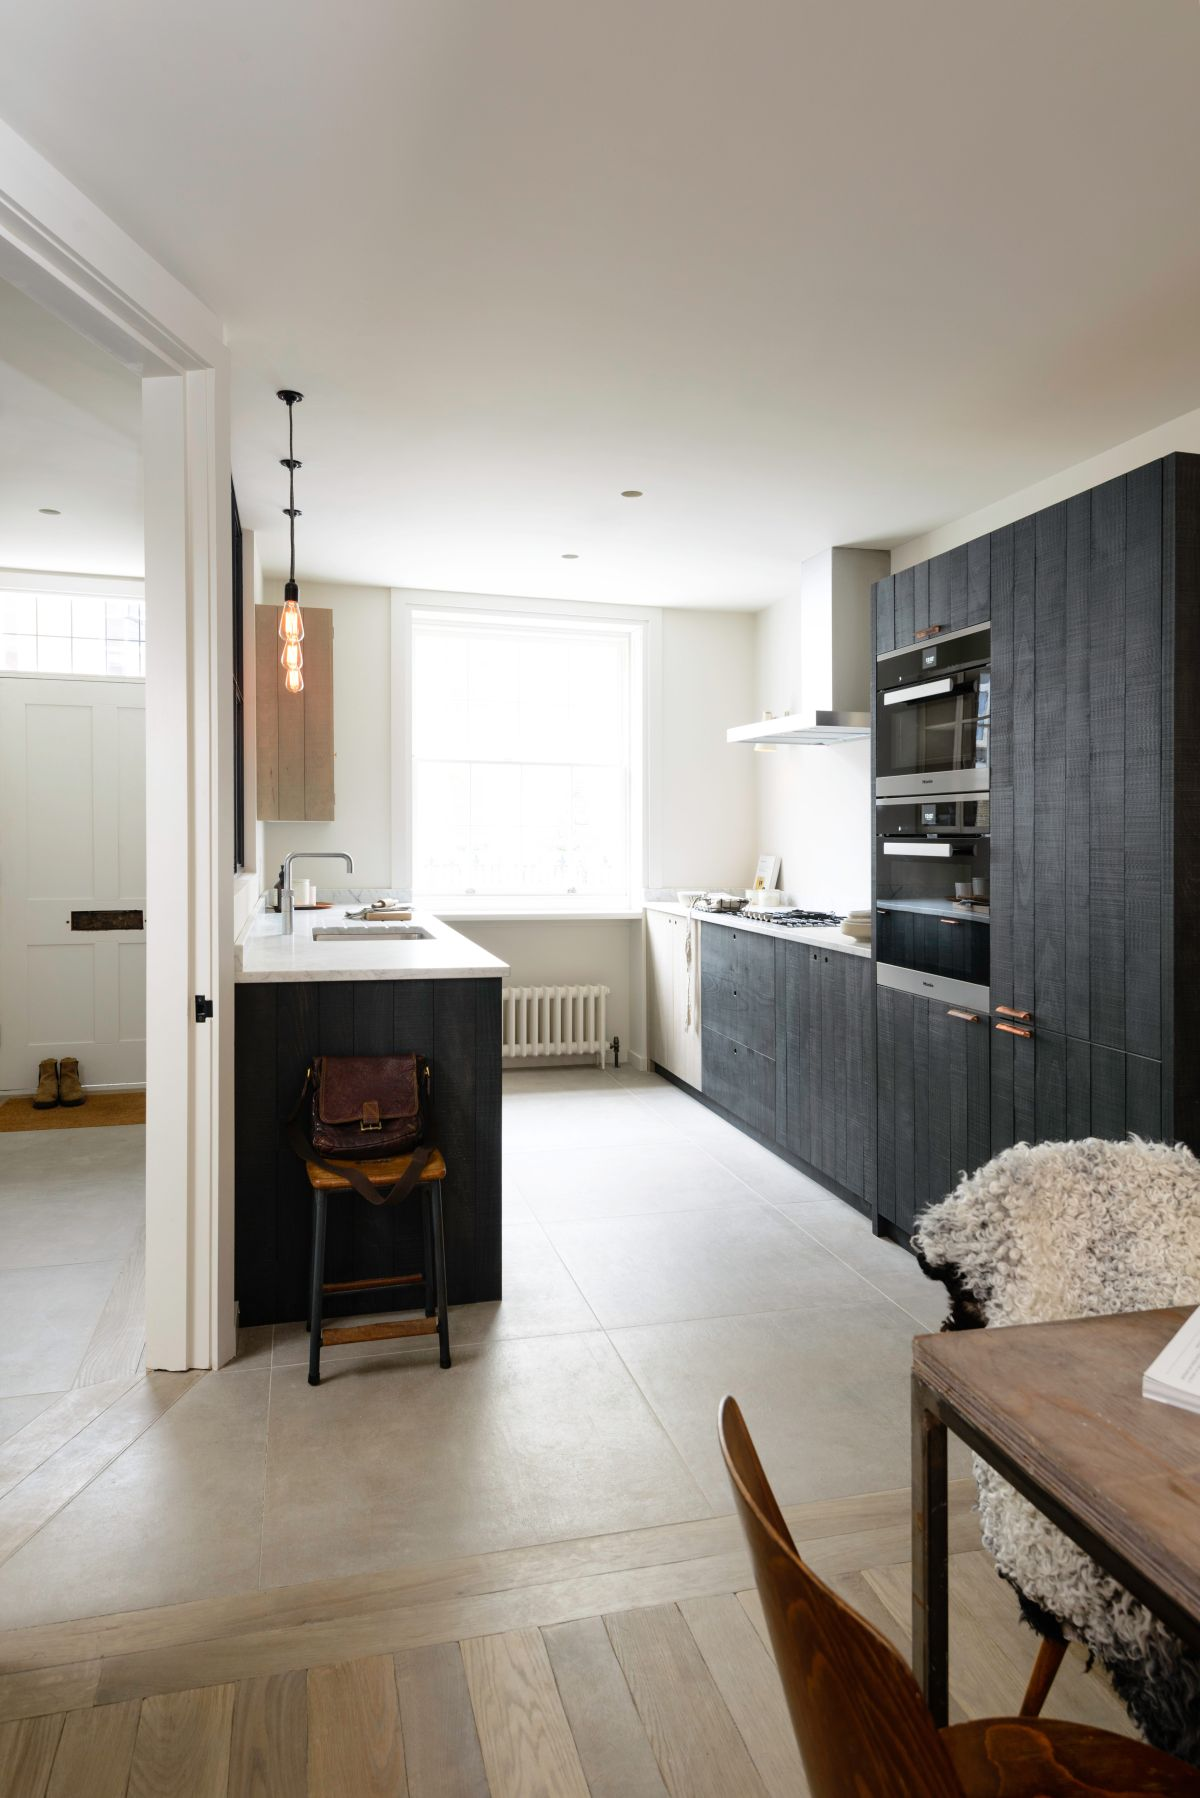 23 galley kitchen ideas that prove small spaces can still be big on style